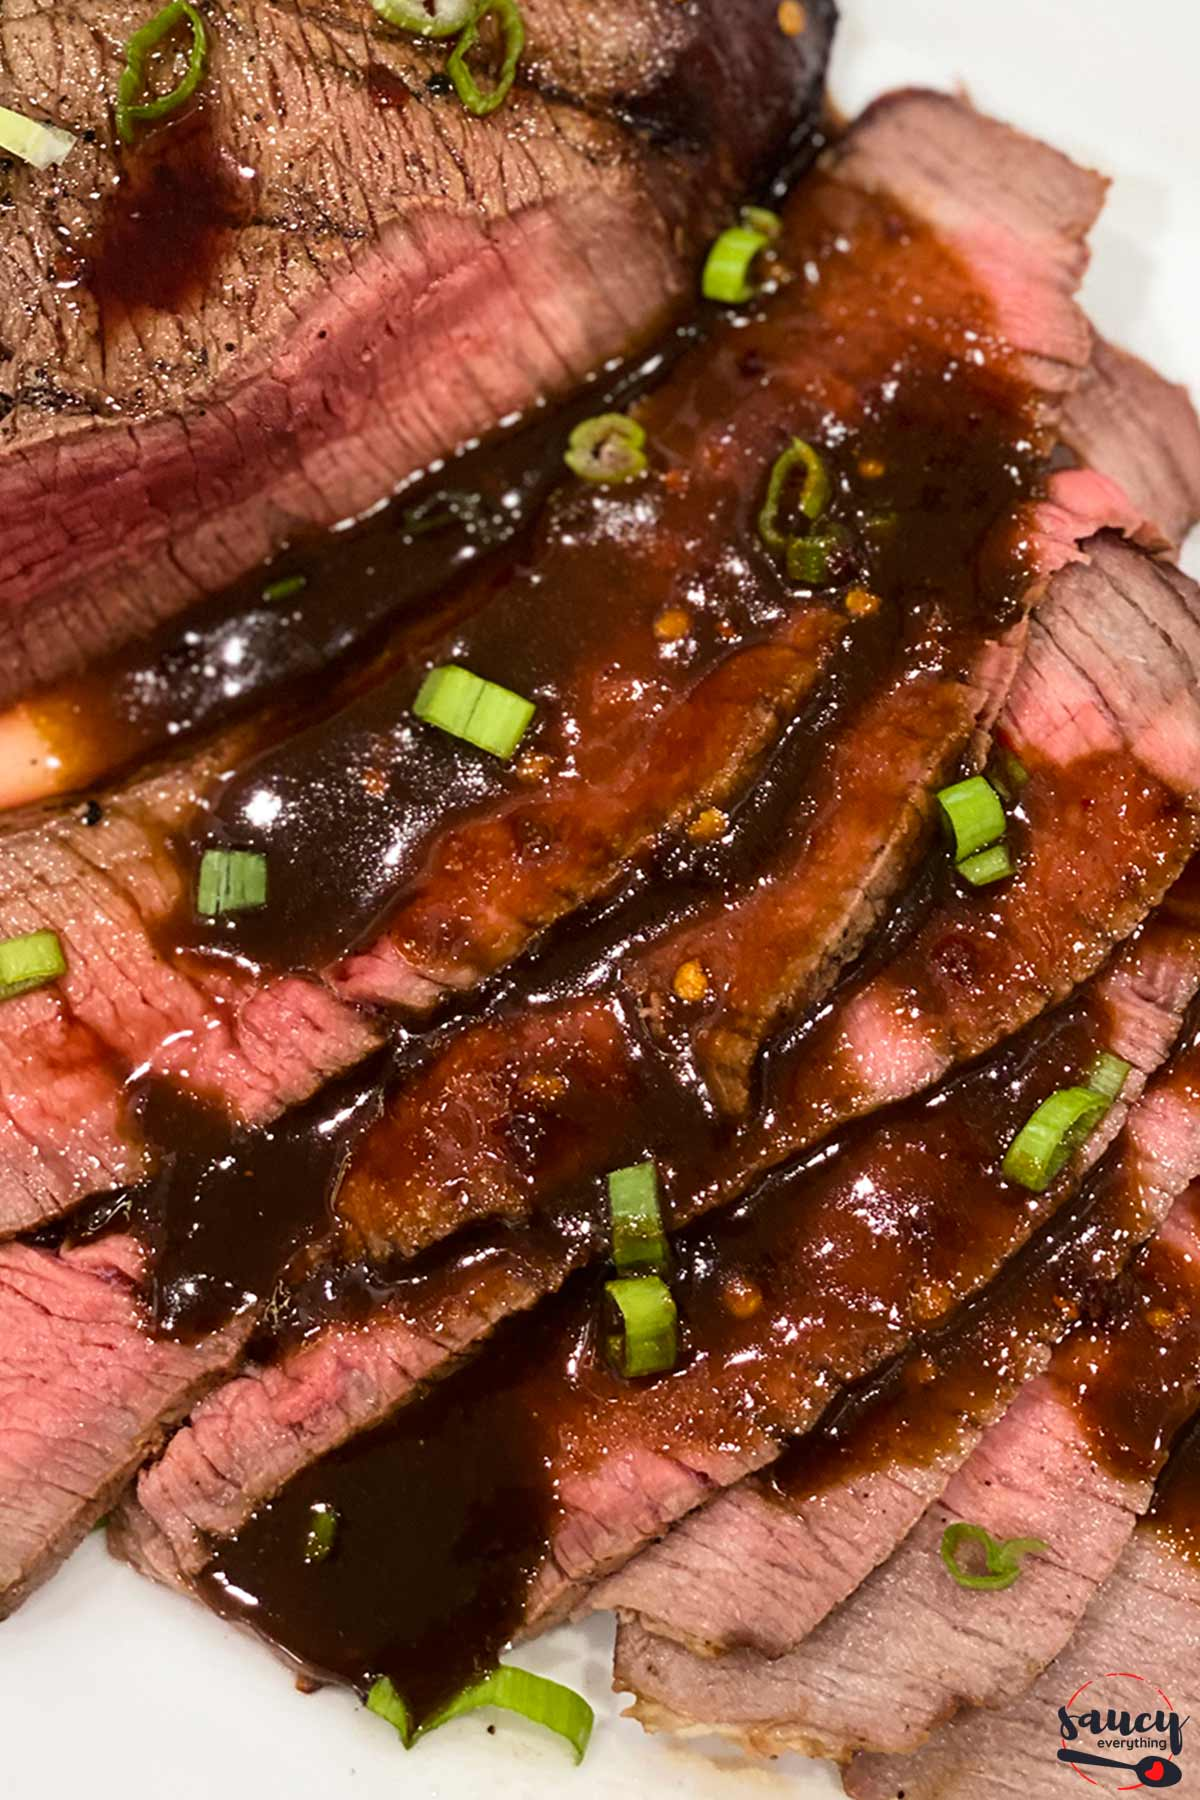 Slices of grilled london broil with sauce